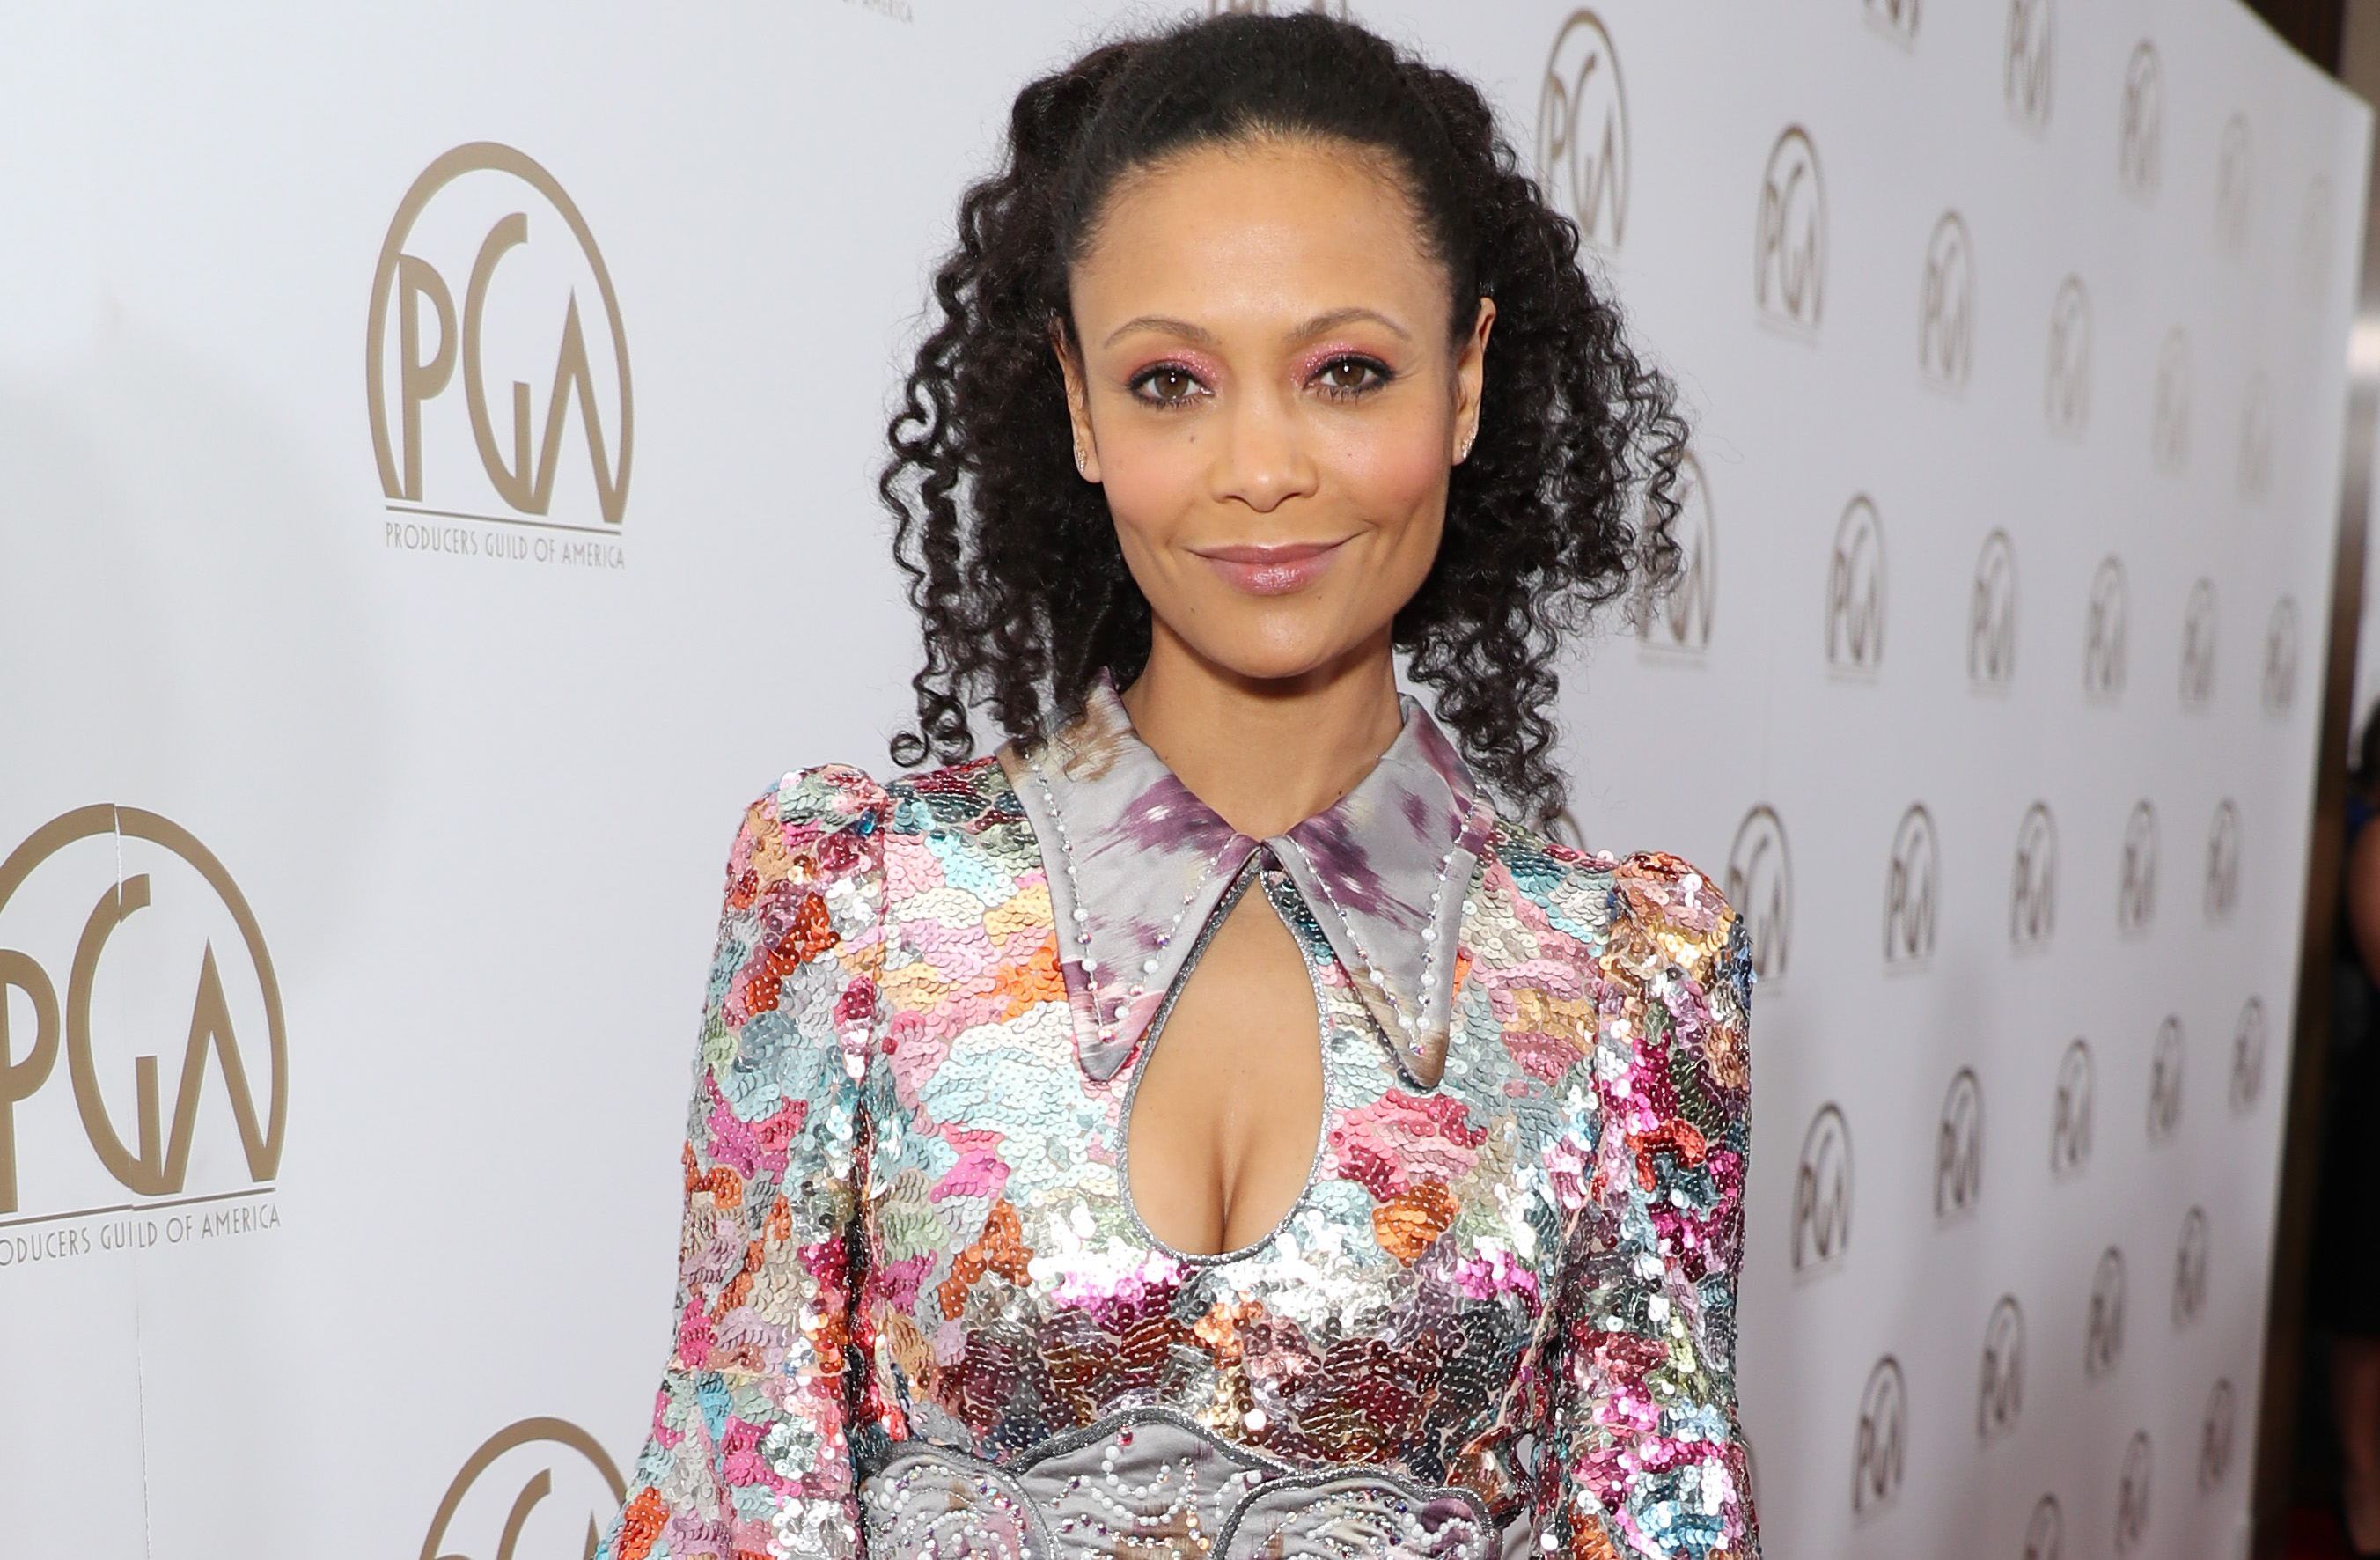 Westworld's Thandie Newton also getting equal pay: 'It's really exciting'